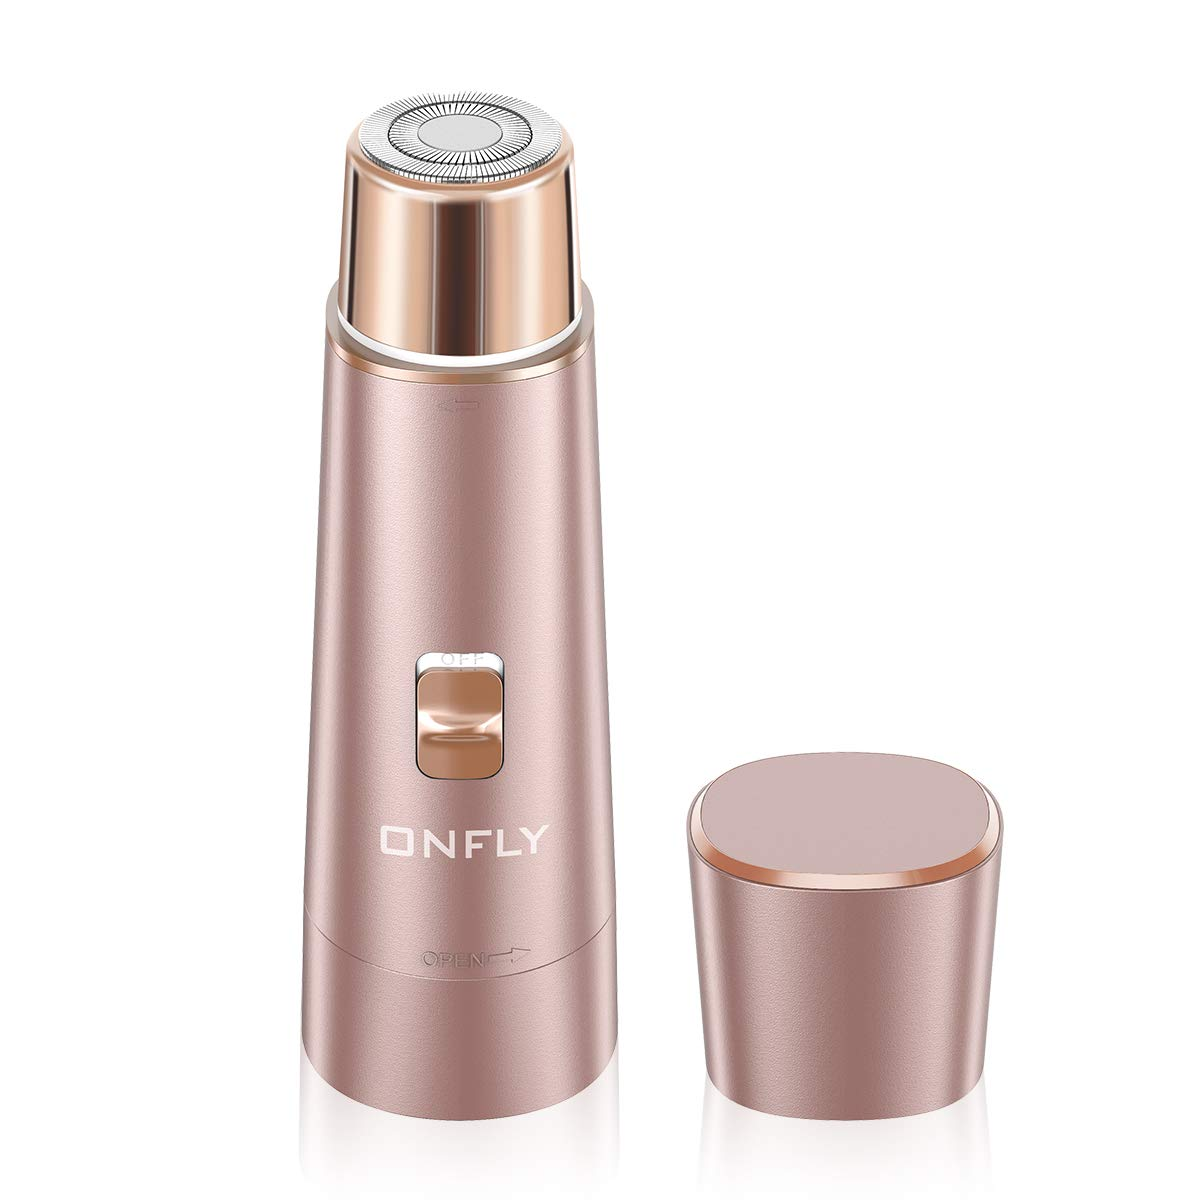 Facial Hair Removal for Women, ONFLY USB Rechargeable Waterproof Hair Remover Electric Shaver Razor for Peach (Rose Gold) by ONFLY